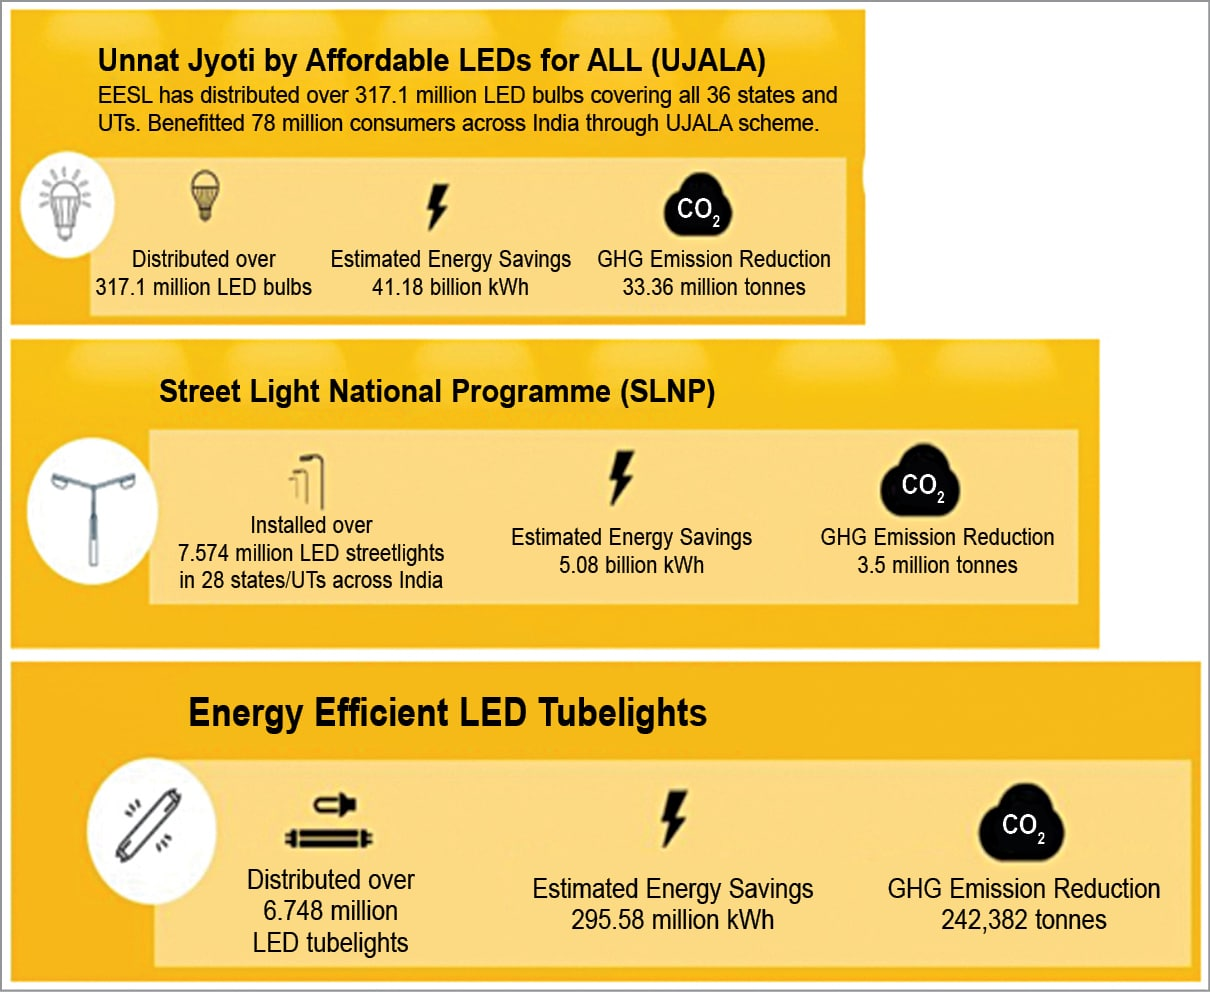 Outcome of EESL initiatives in 2018 to boost LED lighting adoption in India